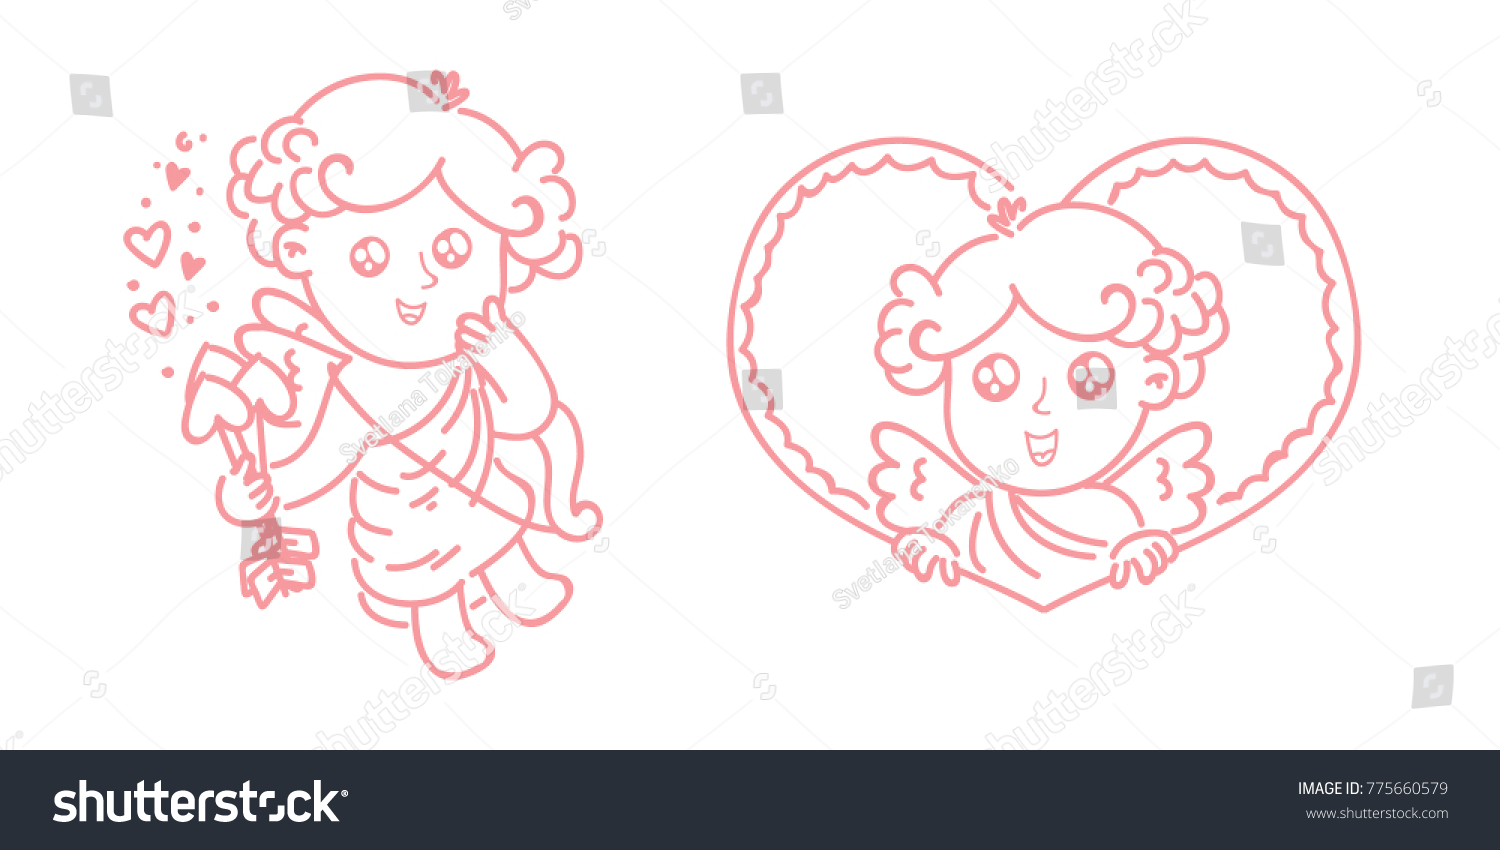 Line Art Heart Outline : Cute outline cupid amur baby character stock vector